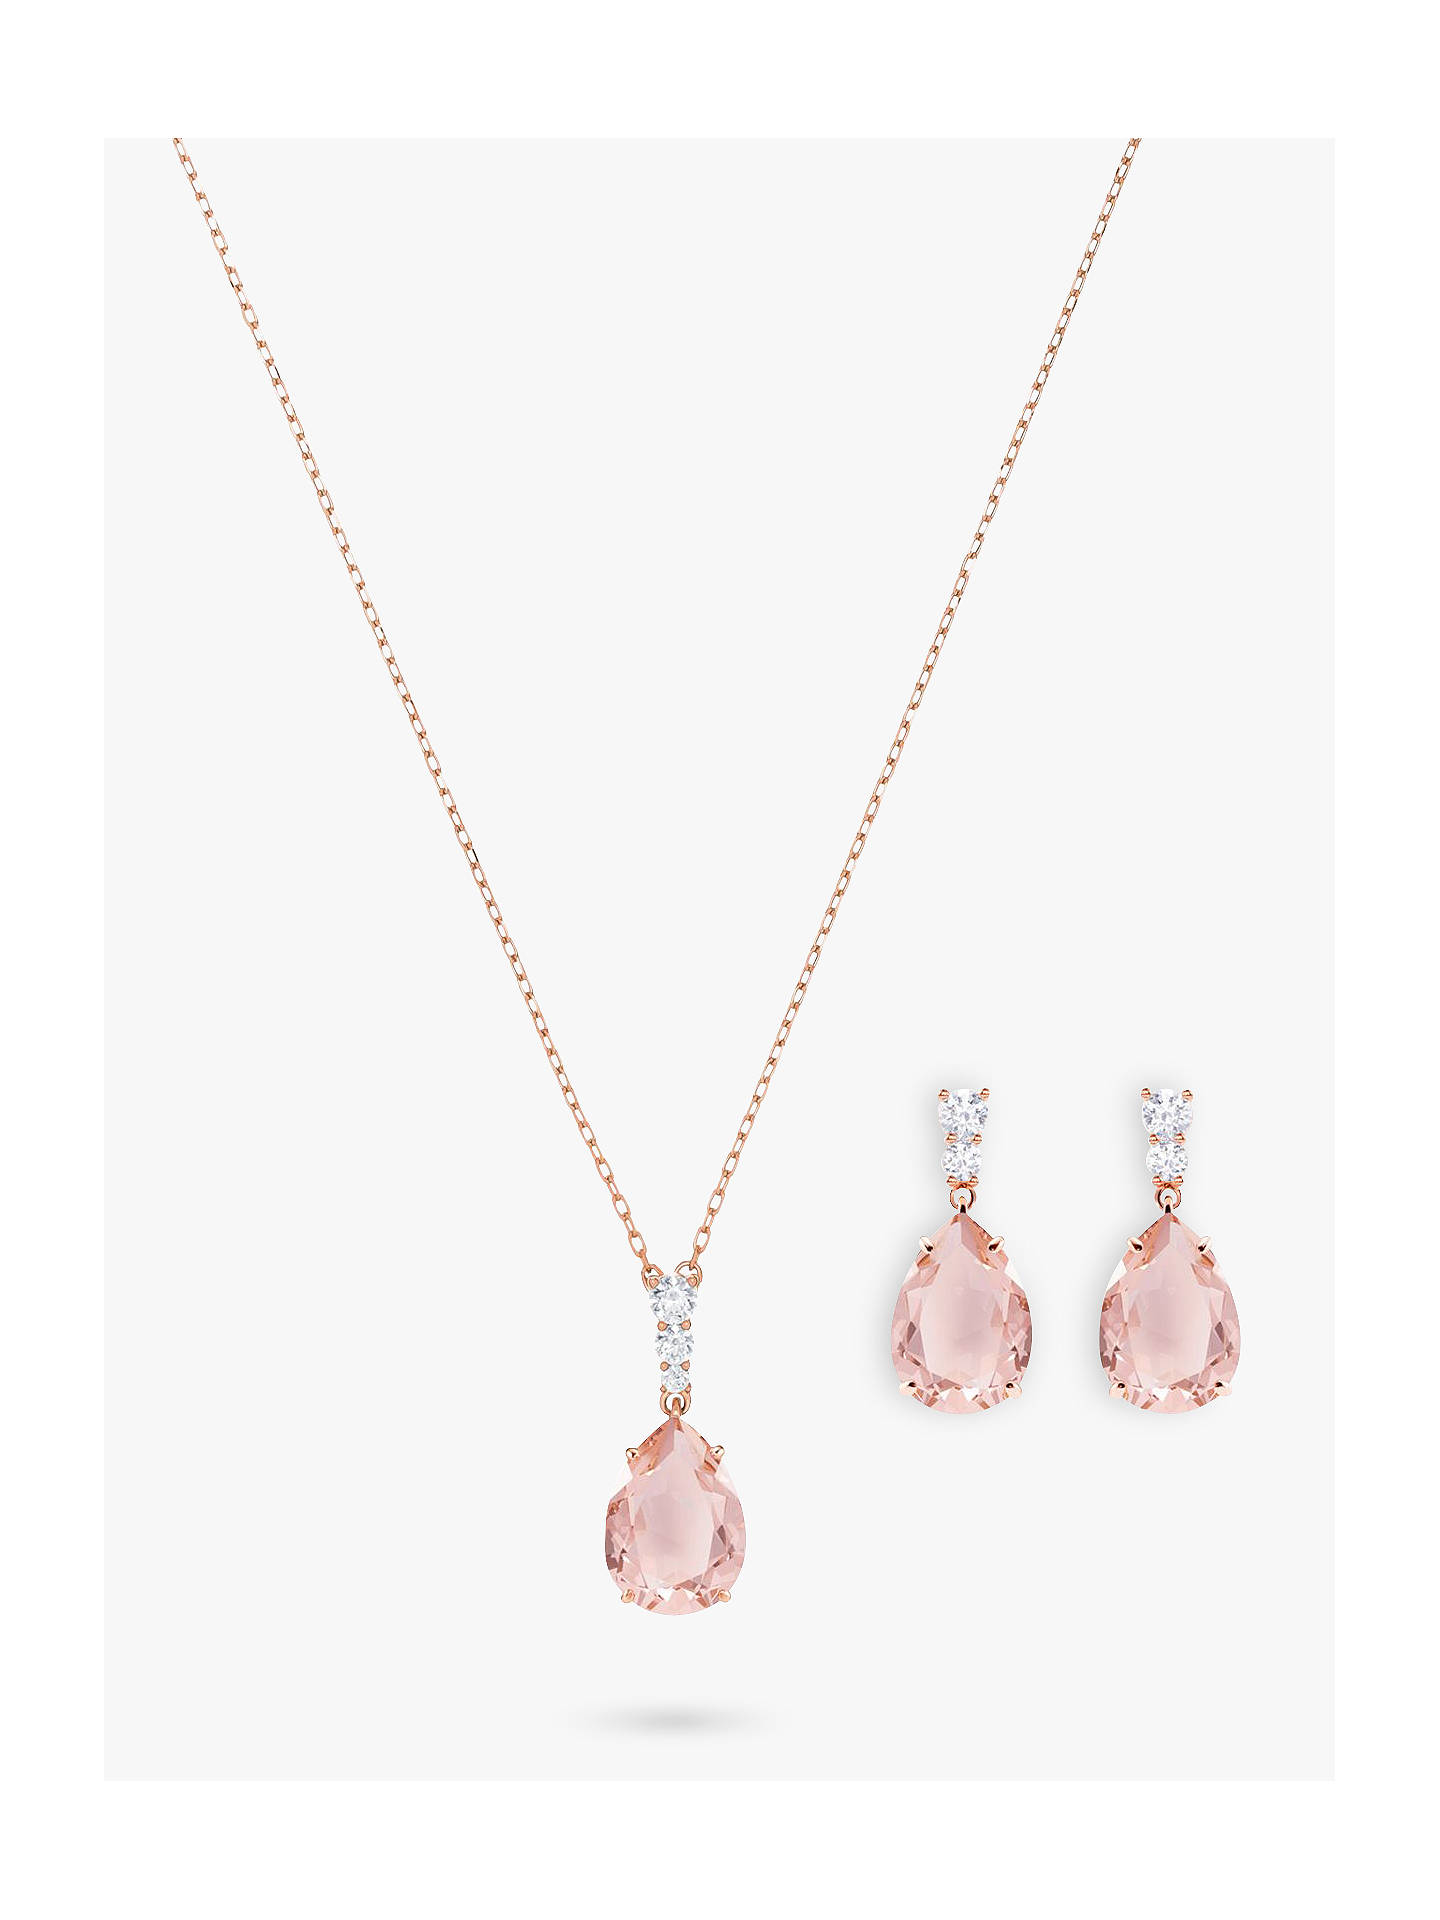 BuySwarovski Vintage Crystal Teardrop Drop Earrings and Pendant Necklace Jewellery Set, Rose Gold/Pink Online at johnlewis.com